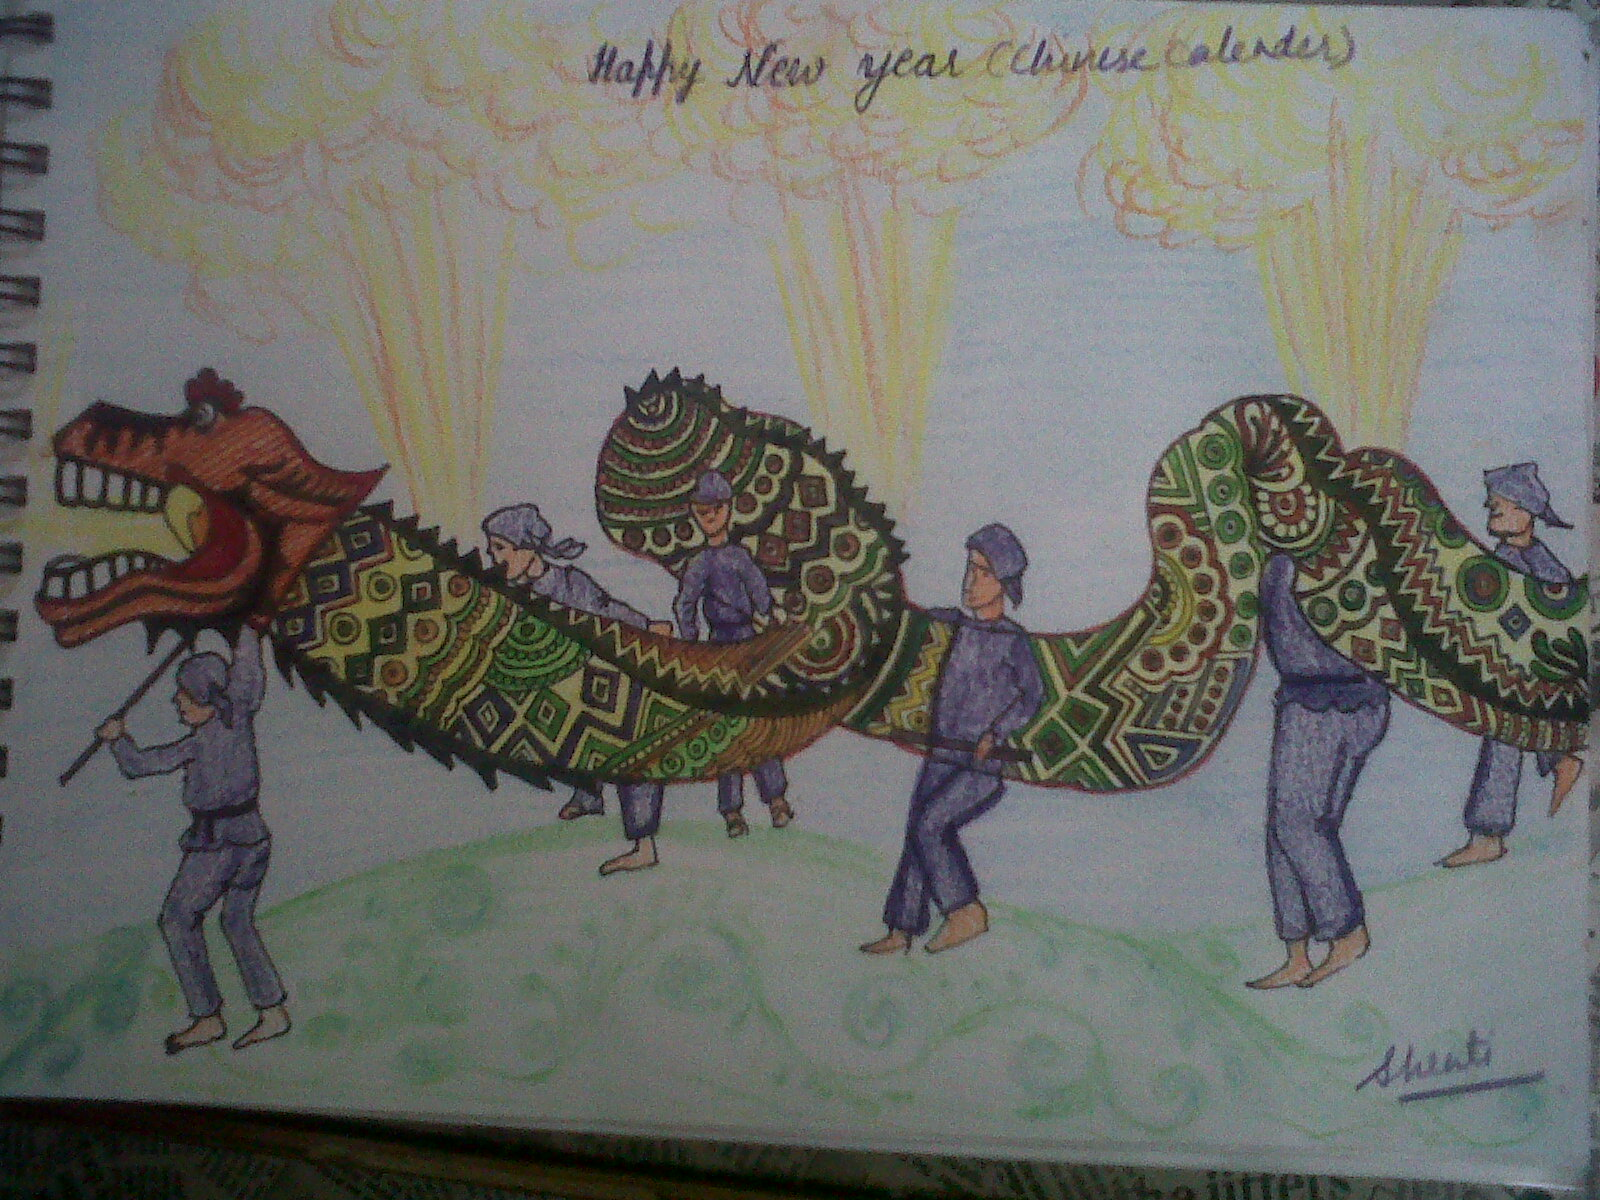 chinese happy new year greetings by shruti goyal 4th semester student of bsc animation multimedia